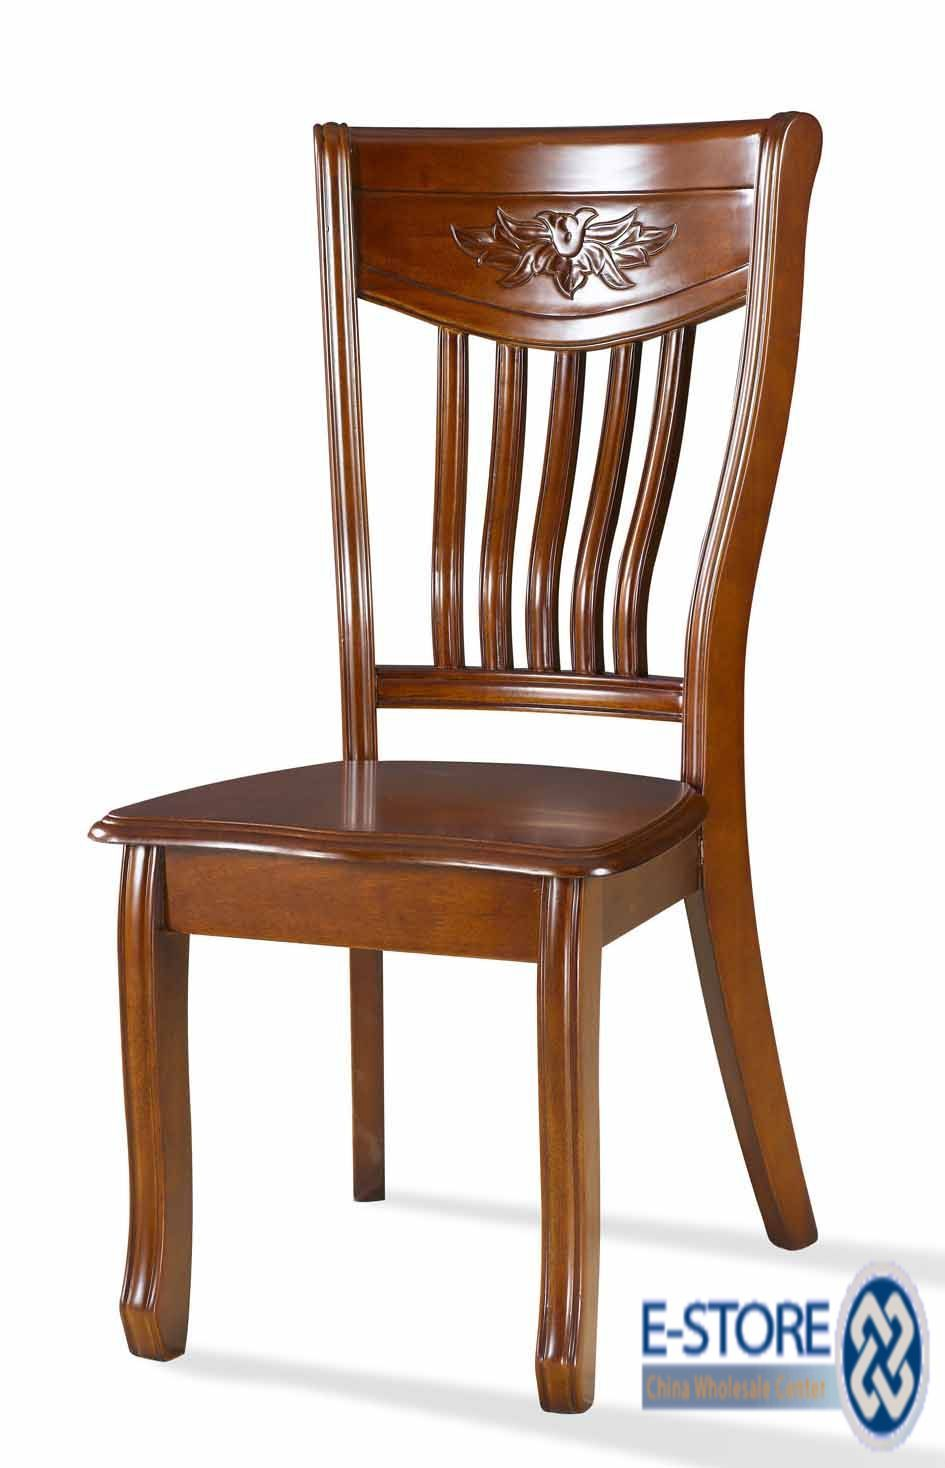 Vintage Wooden Dining Chairs Office Chair Under 200 Antique In 2019 Pinterest